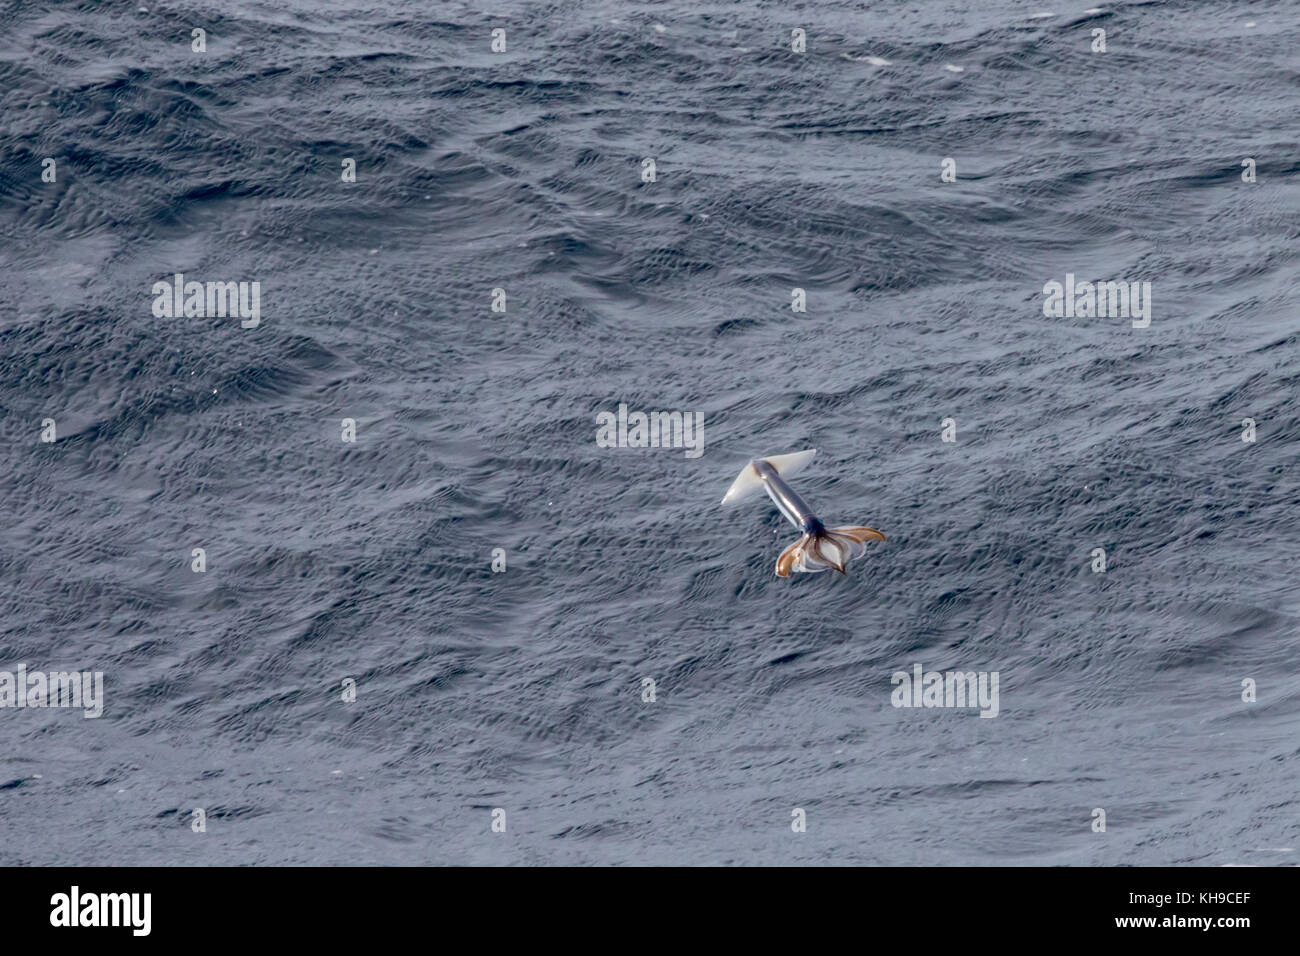 Little known flying squid take off from the water by jet propulsion to escape predation in the middle of the Atlantic Stock Photo